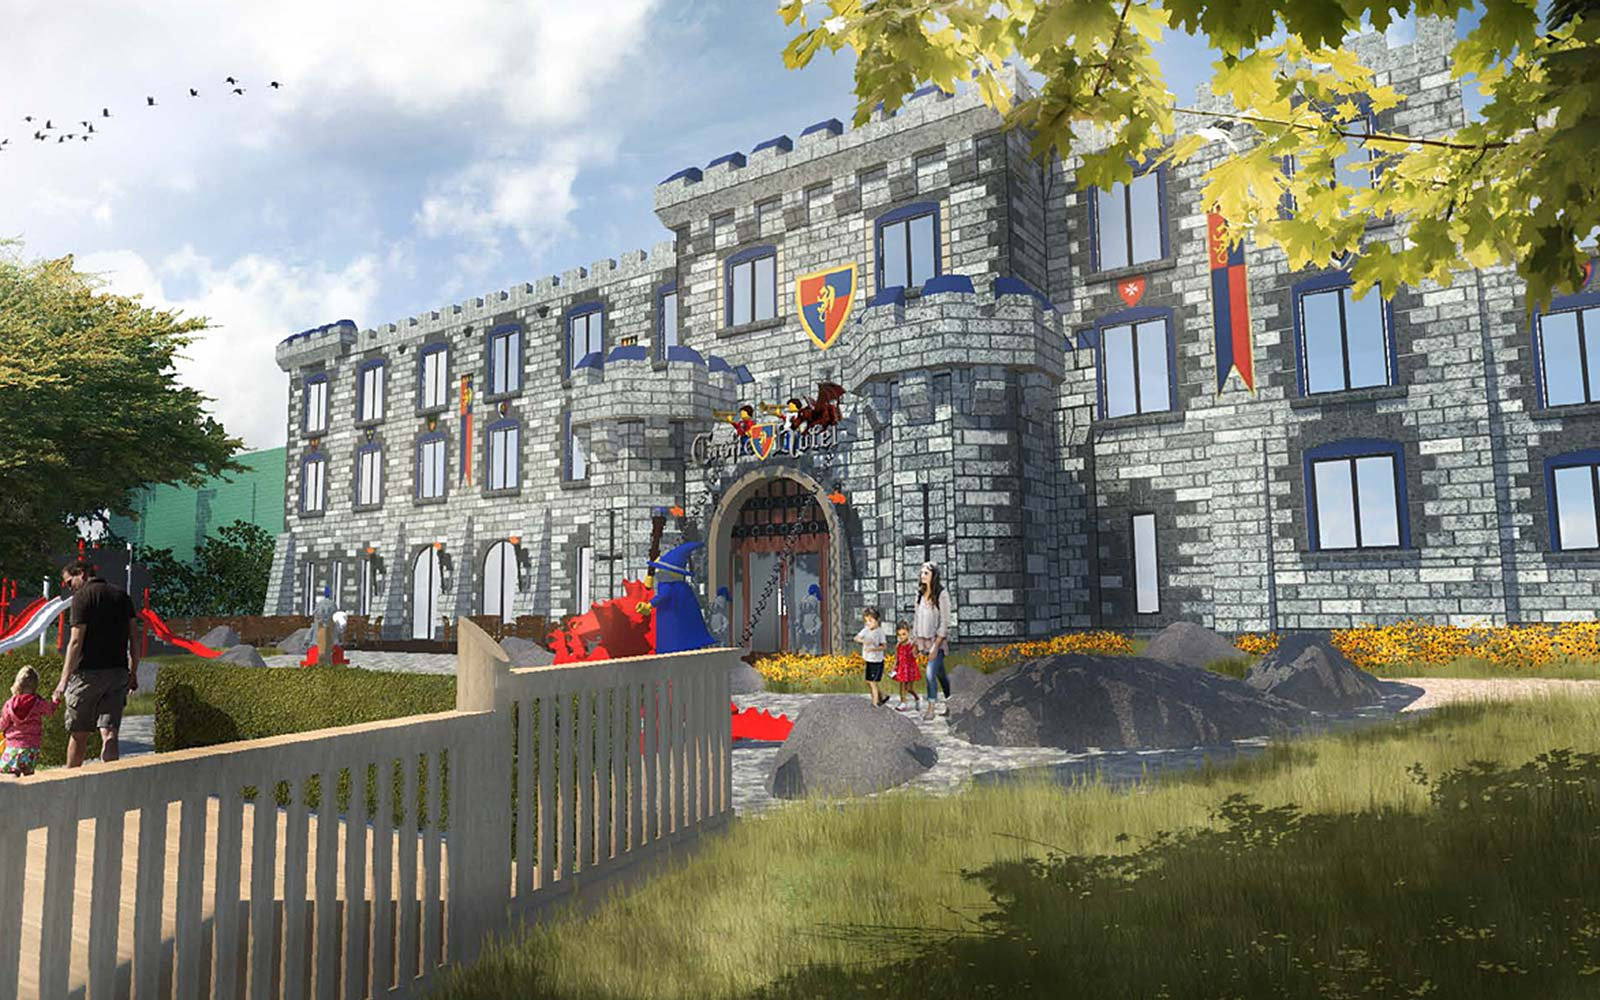 U.K. Legoland's New Castle Hotel Will Make You Feel Like Royalty